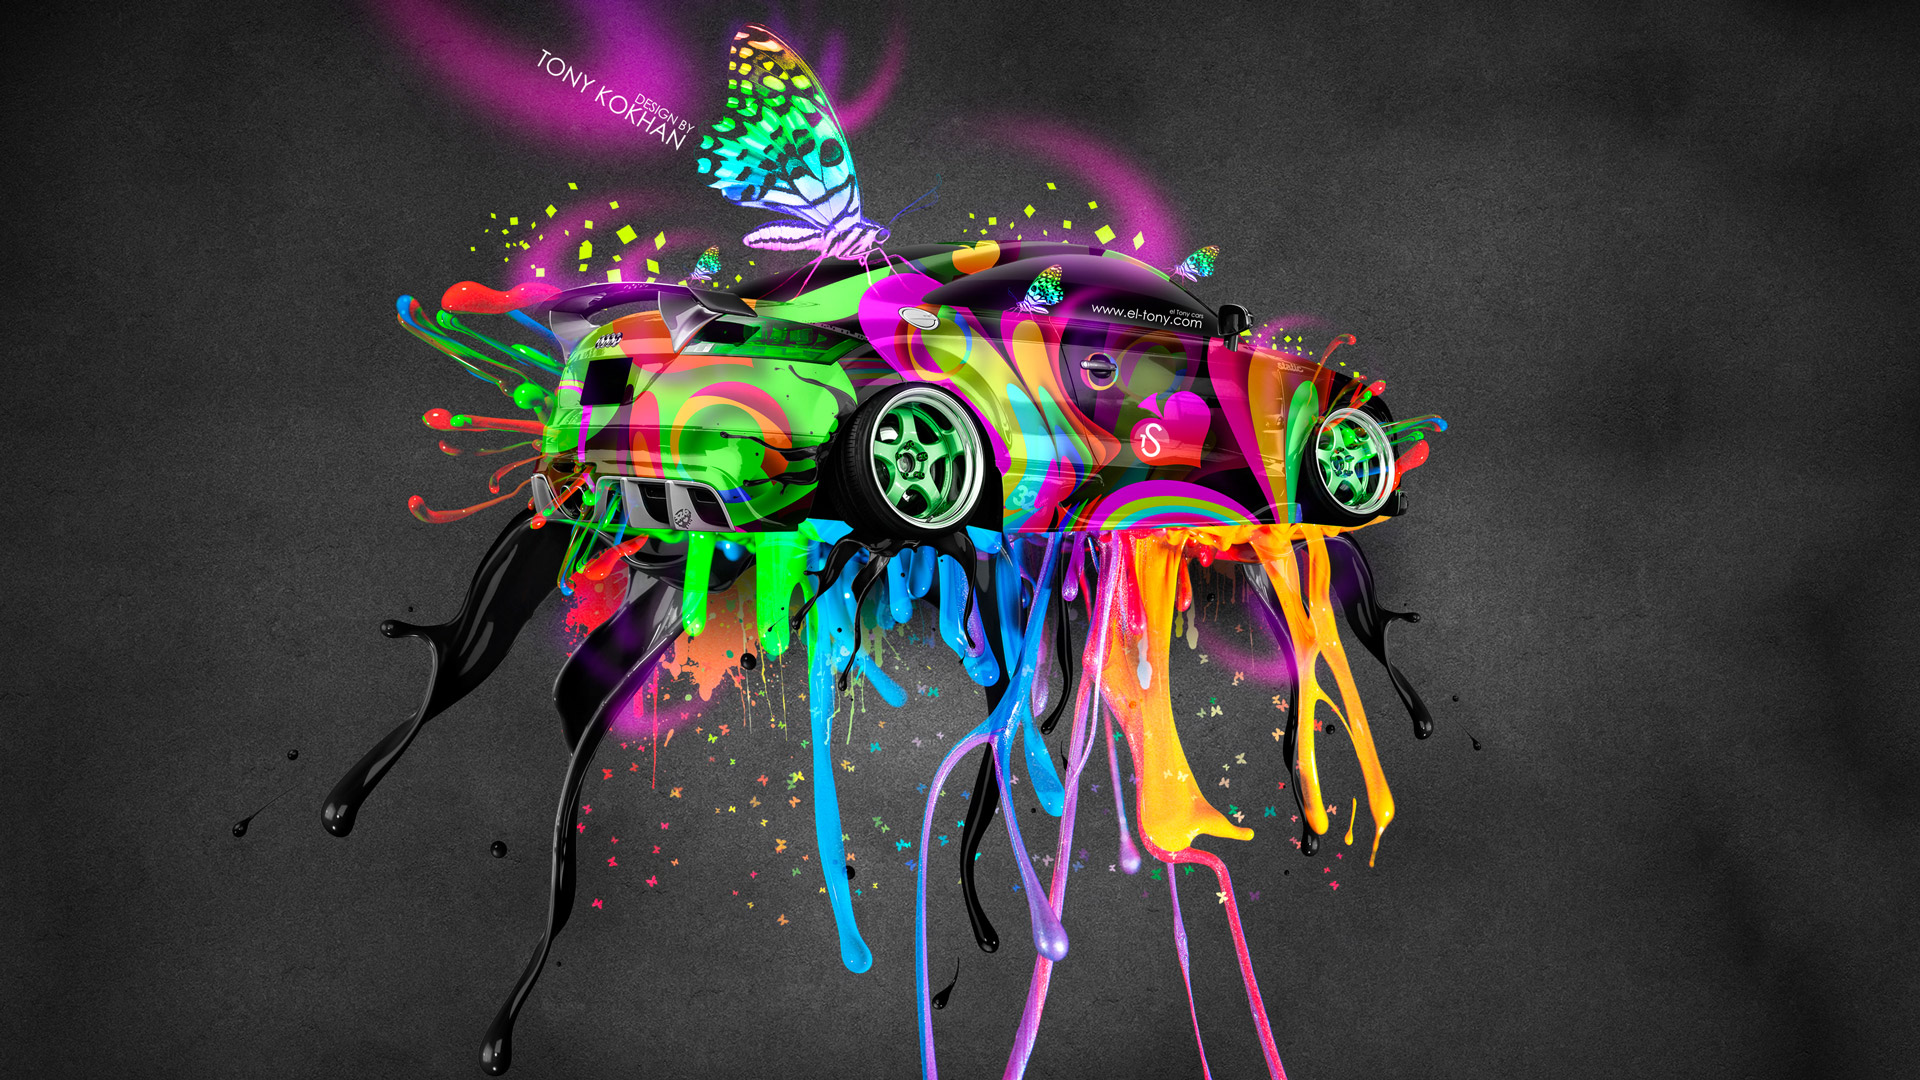 Charmant ... Audi TT Tuning Fantasy Live Colors Butterfly Car 2014